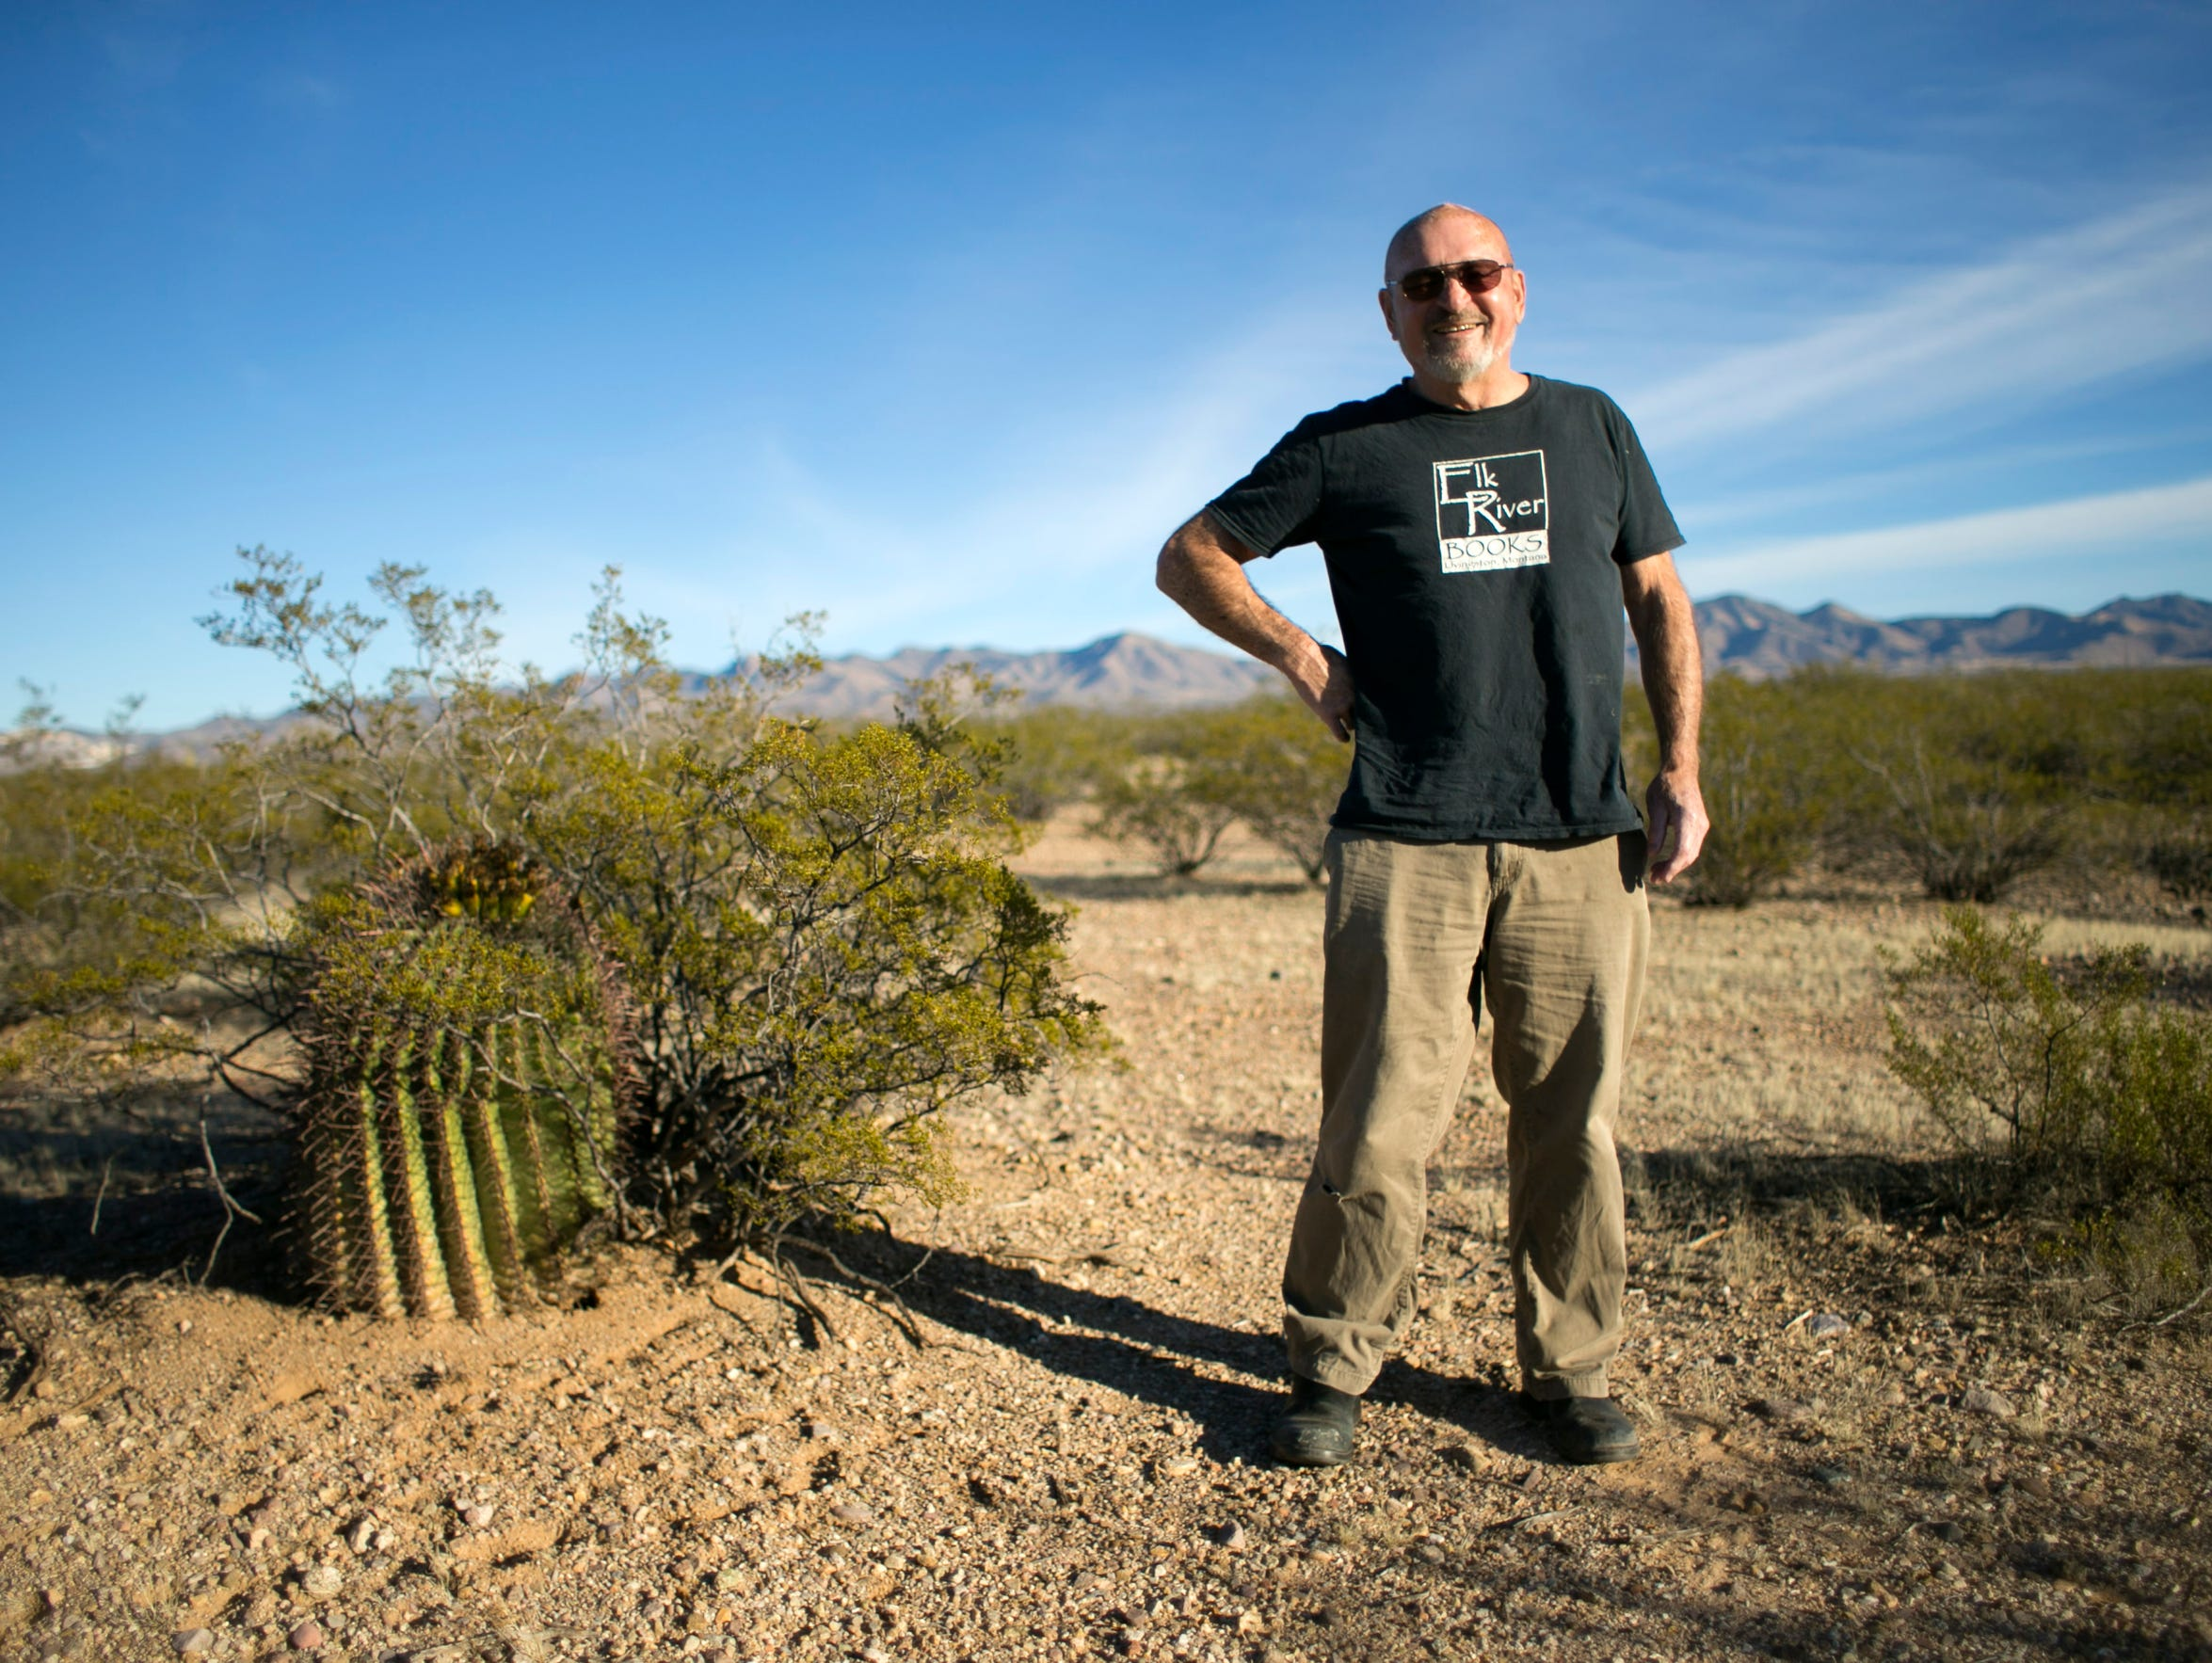 Doug Peacock who lives just outside of Tucson, is a